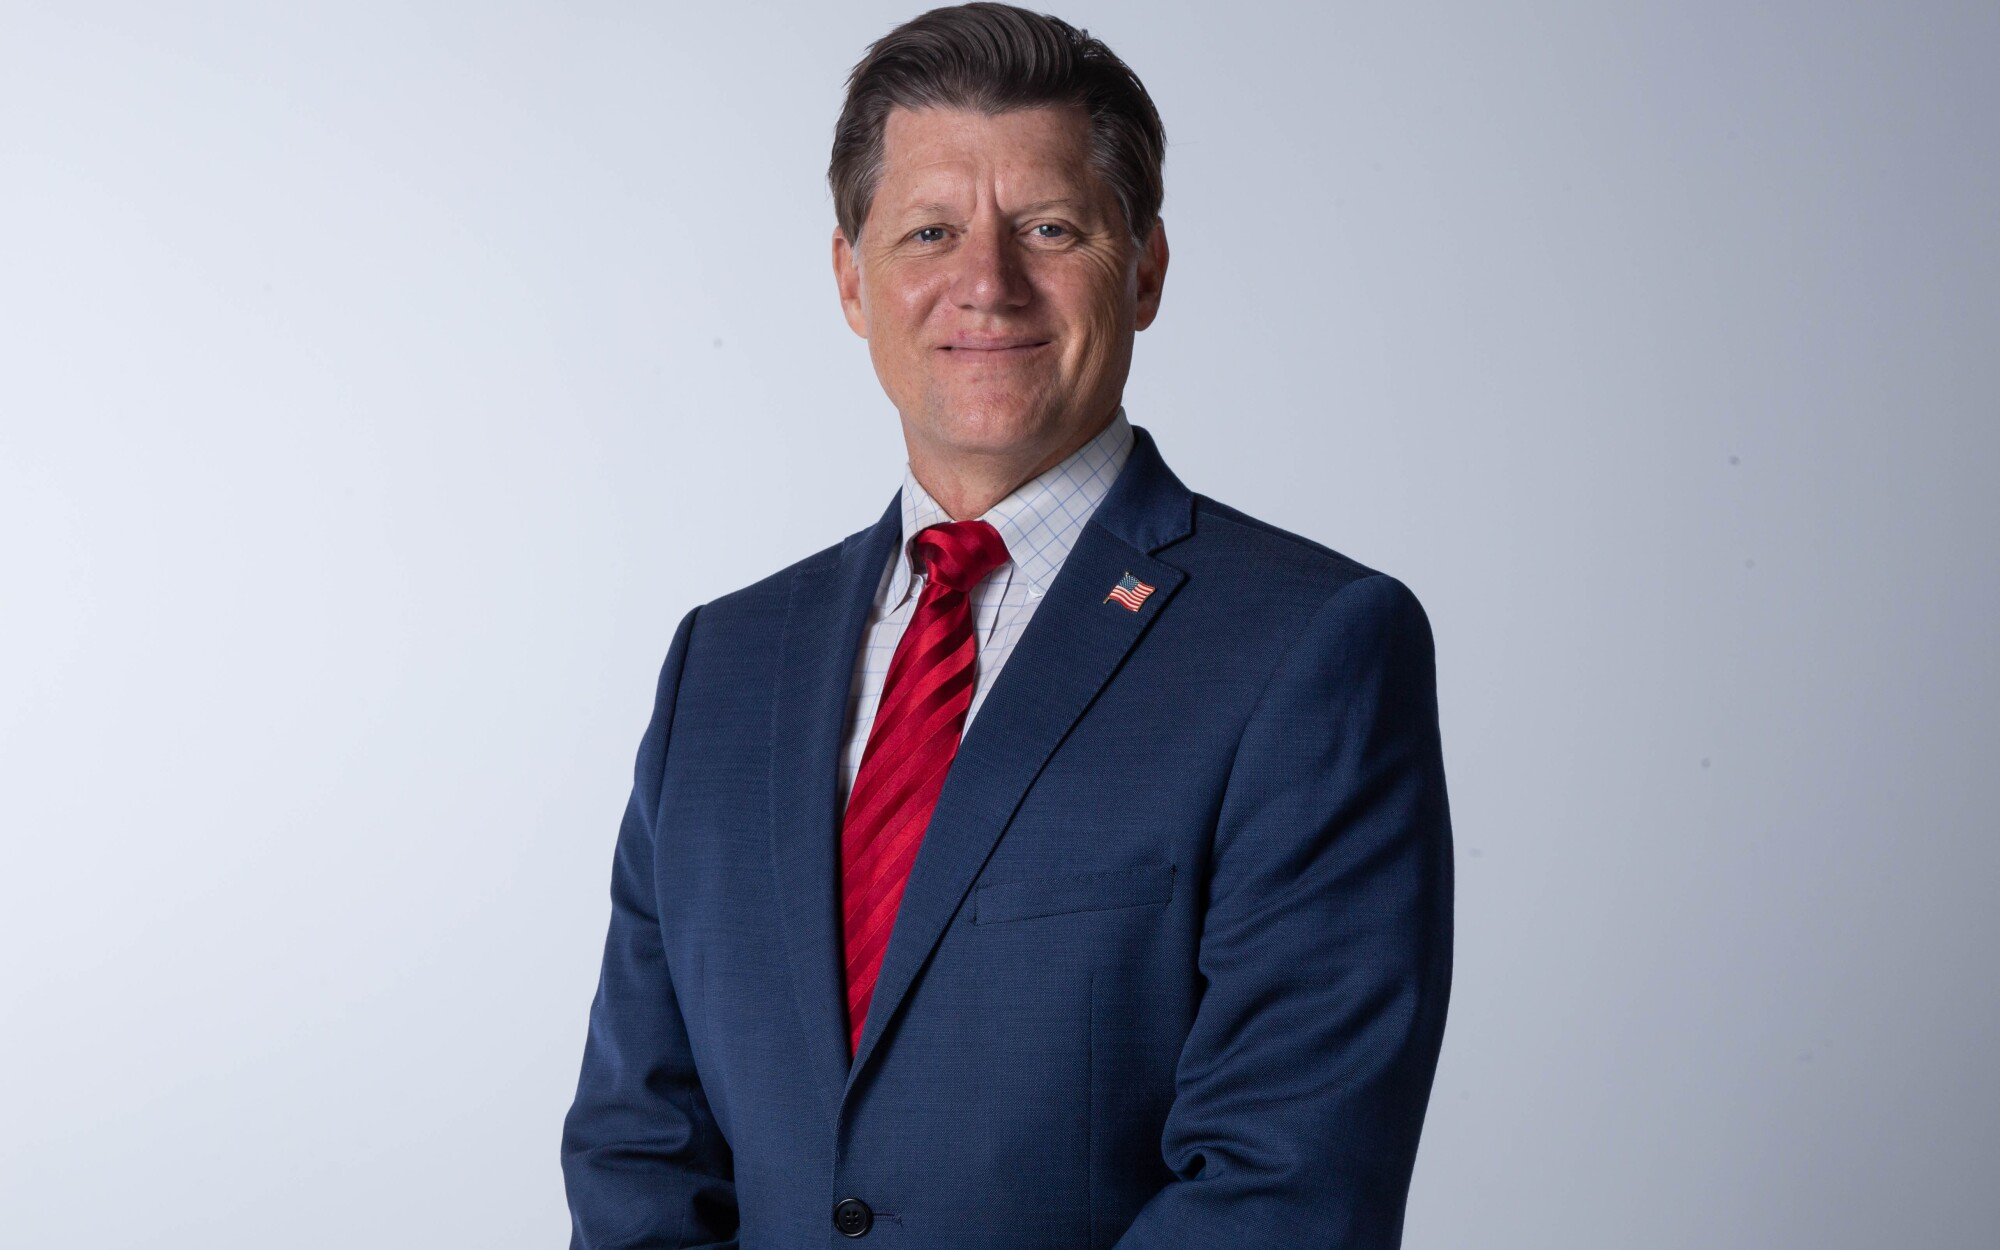 Brian Jones, candidate for the 50th Congressional District